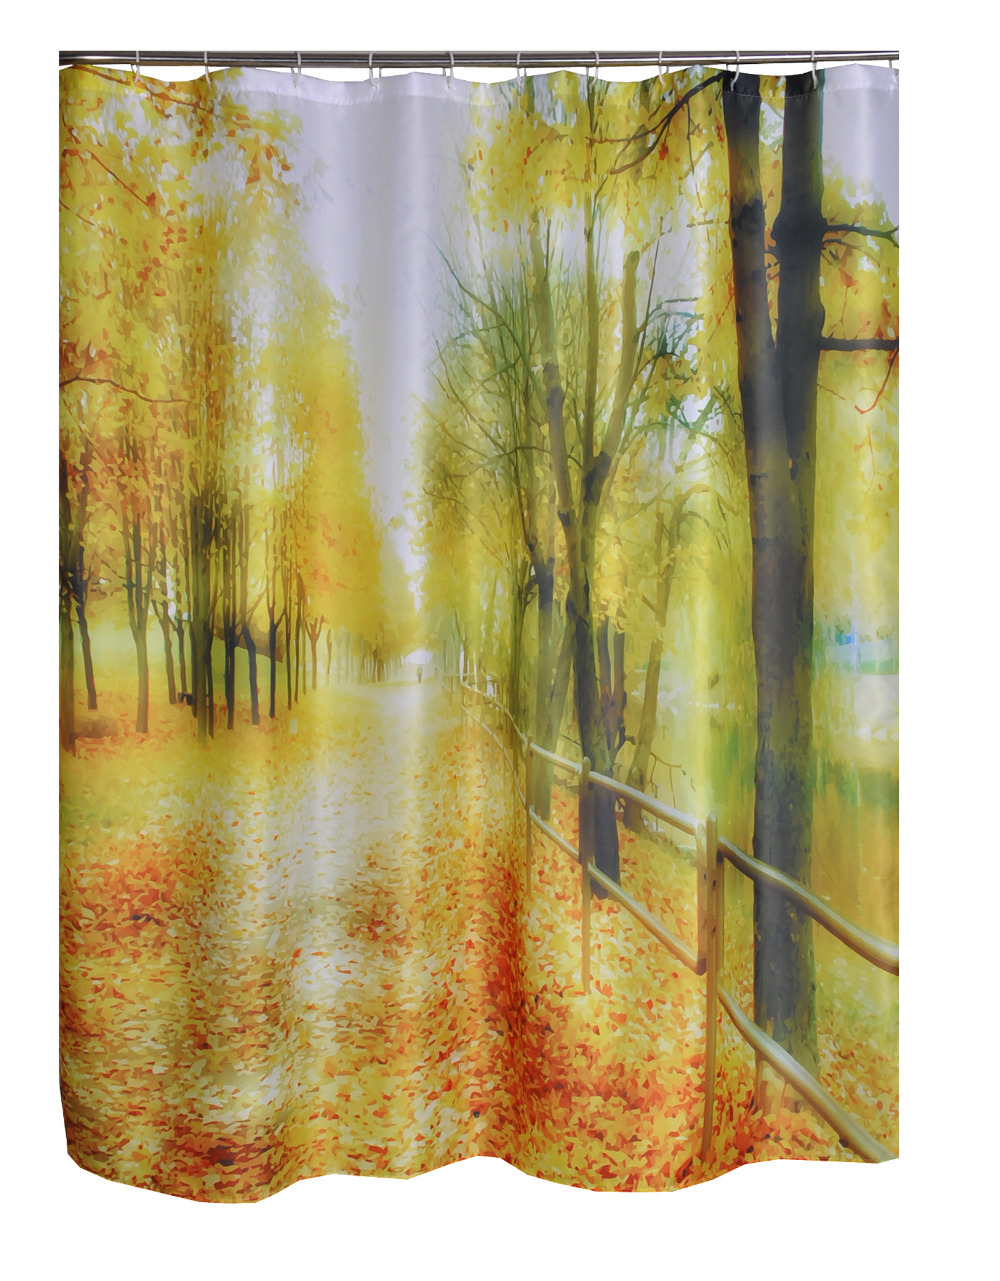 Boulevard Road Printed Bathroom Curtain Polyester Fabric Waterproof Shower Curtains Washable